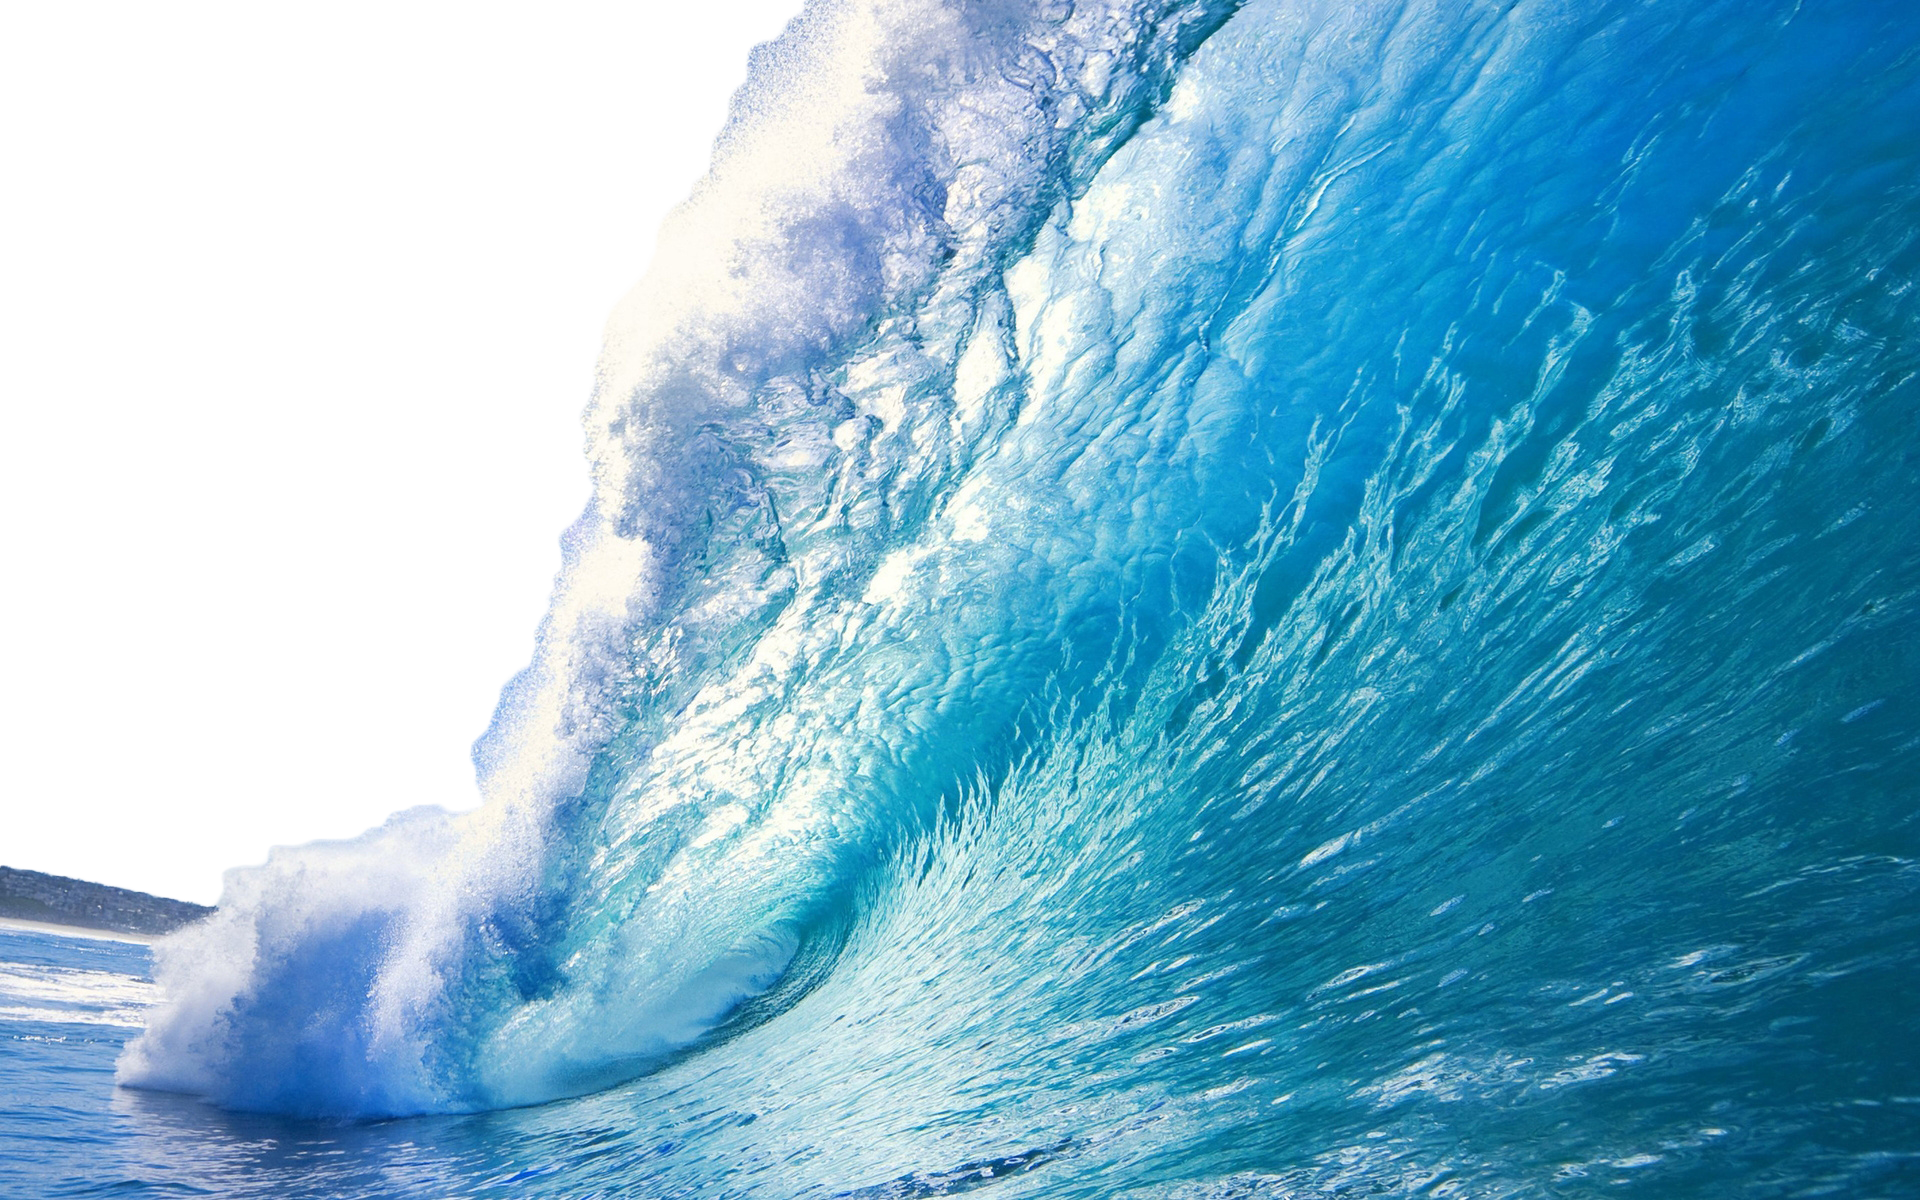 Sea With Wave Png Image Waves Png Photo Image